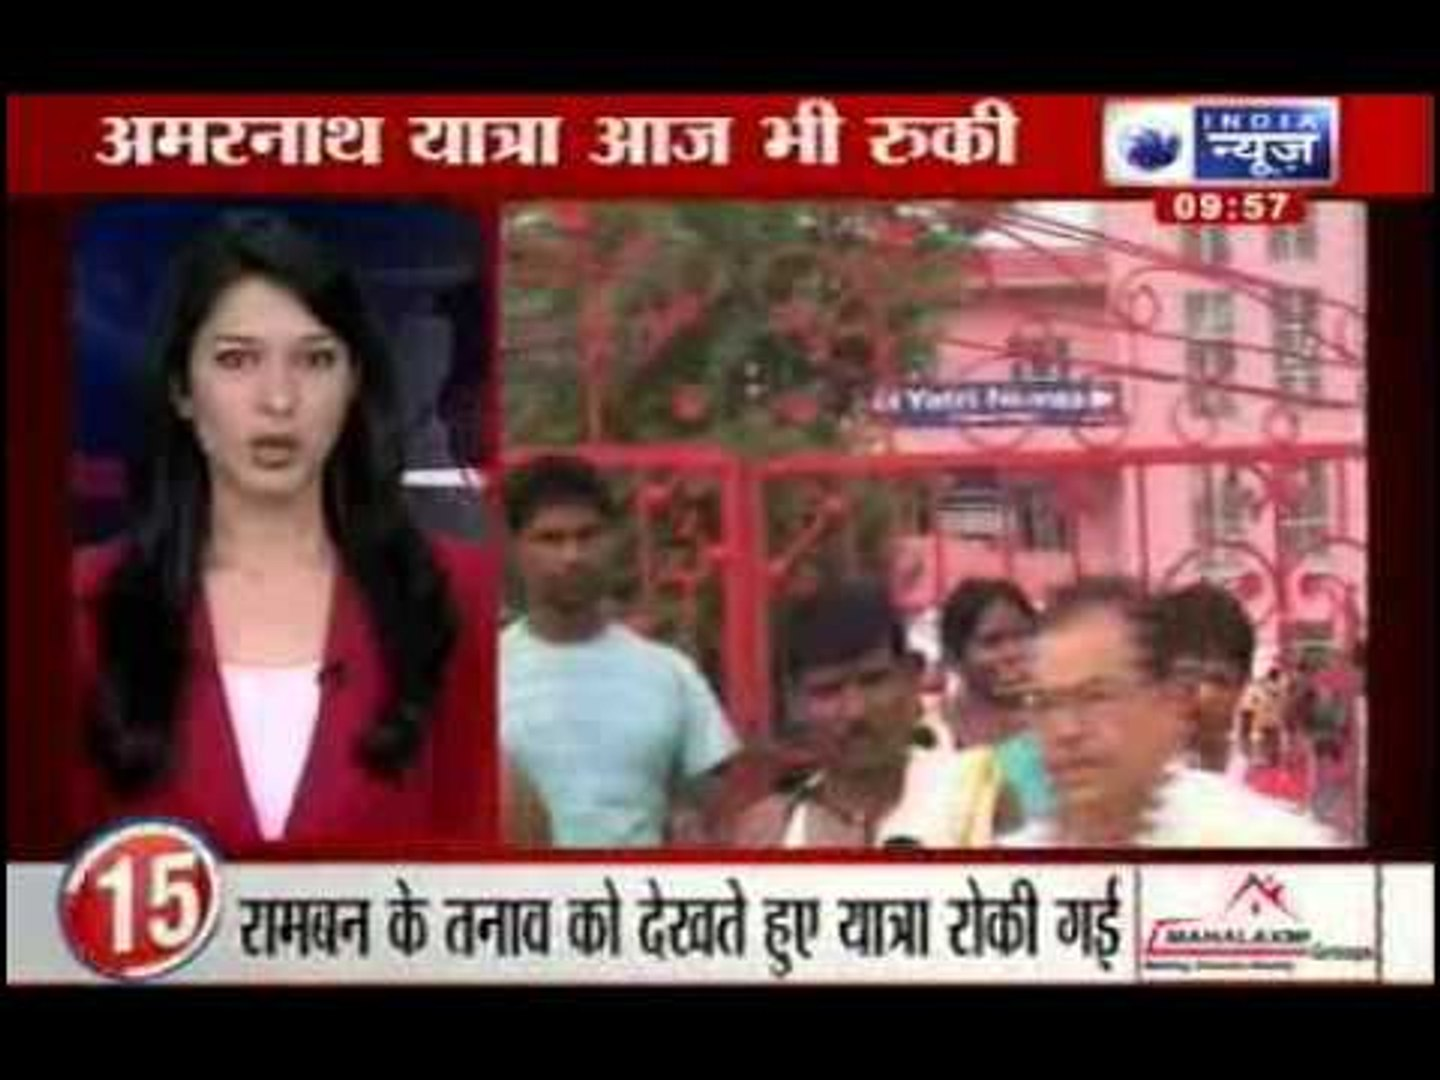 India News: News 25 19th July 2013 10 A.M.